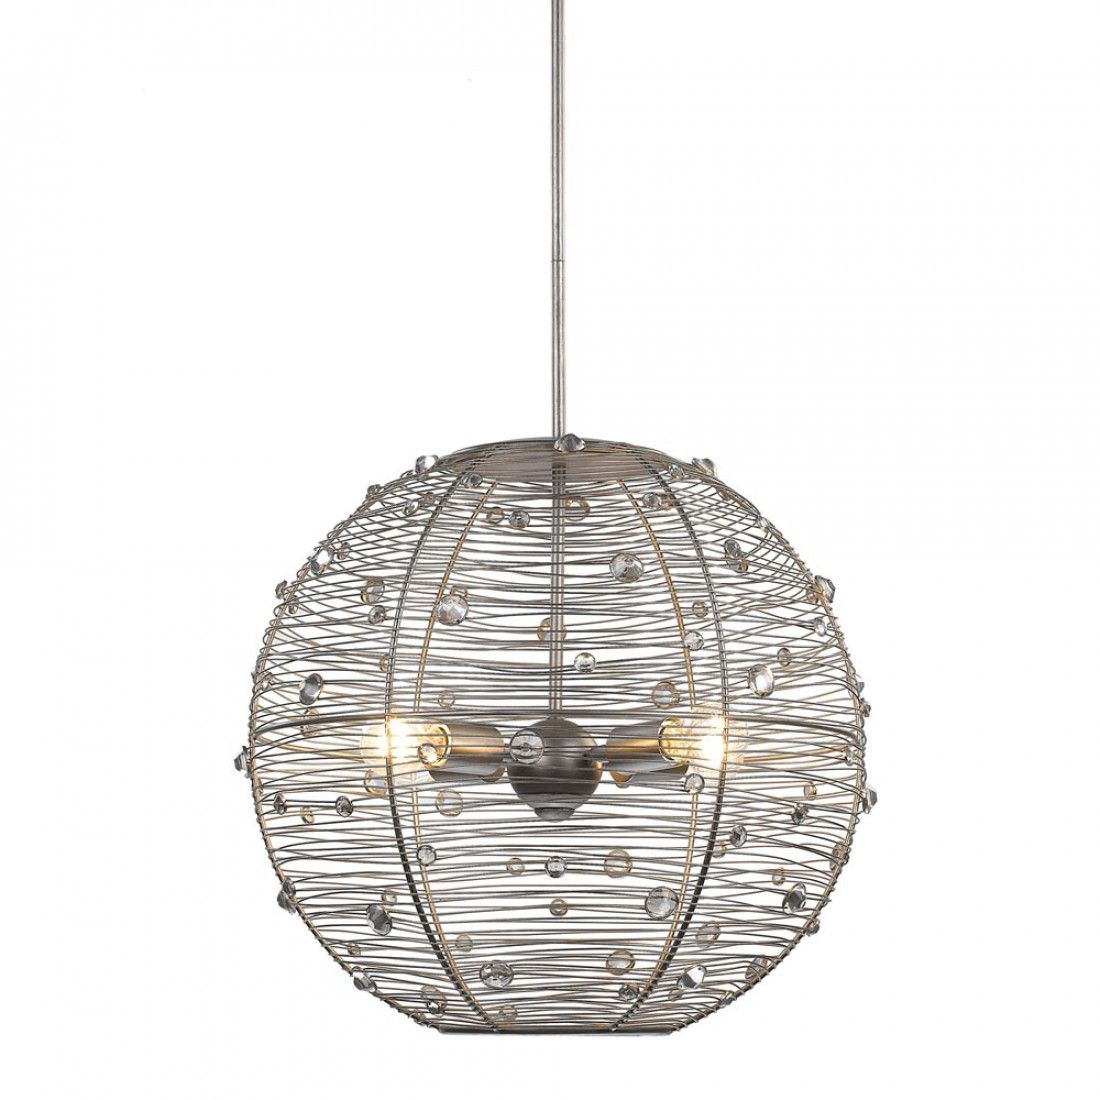 Joia light pendant in peruvian silver pendants entry foyer and